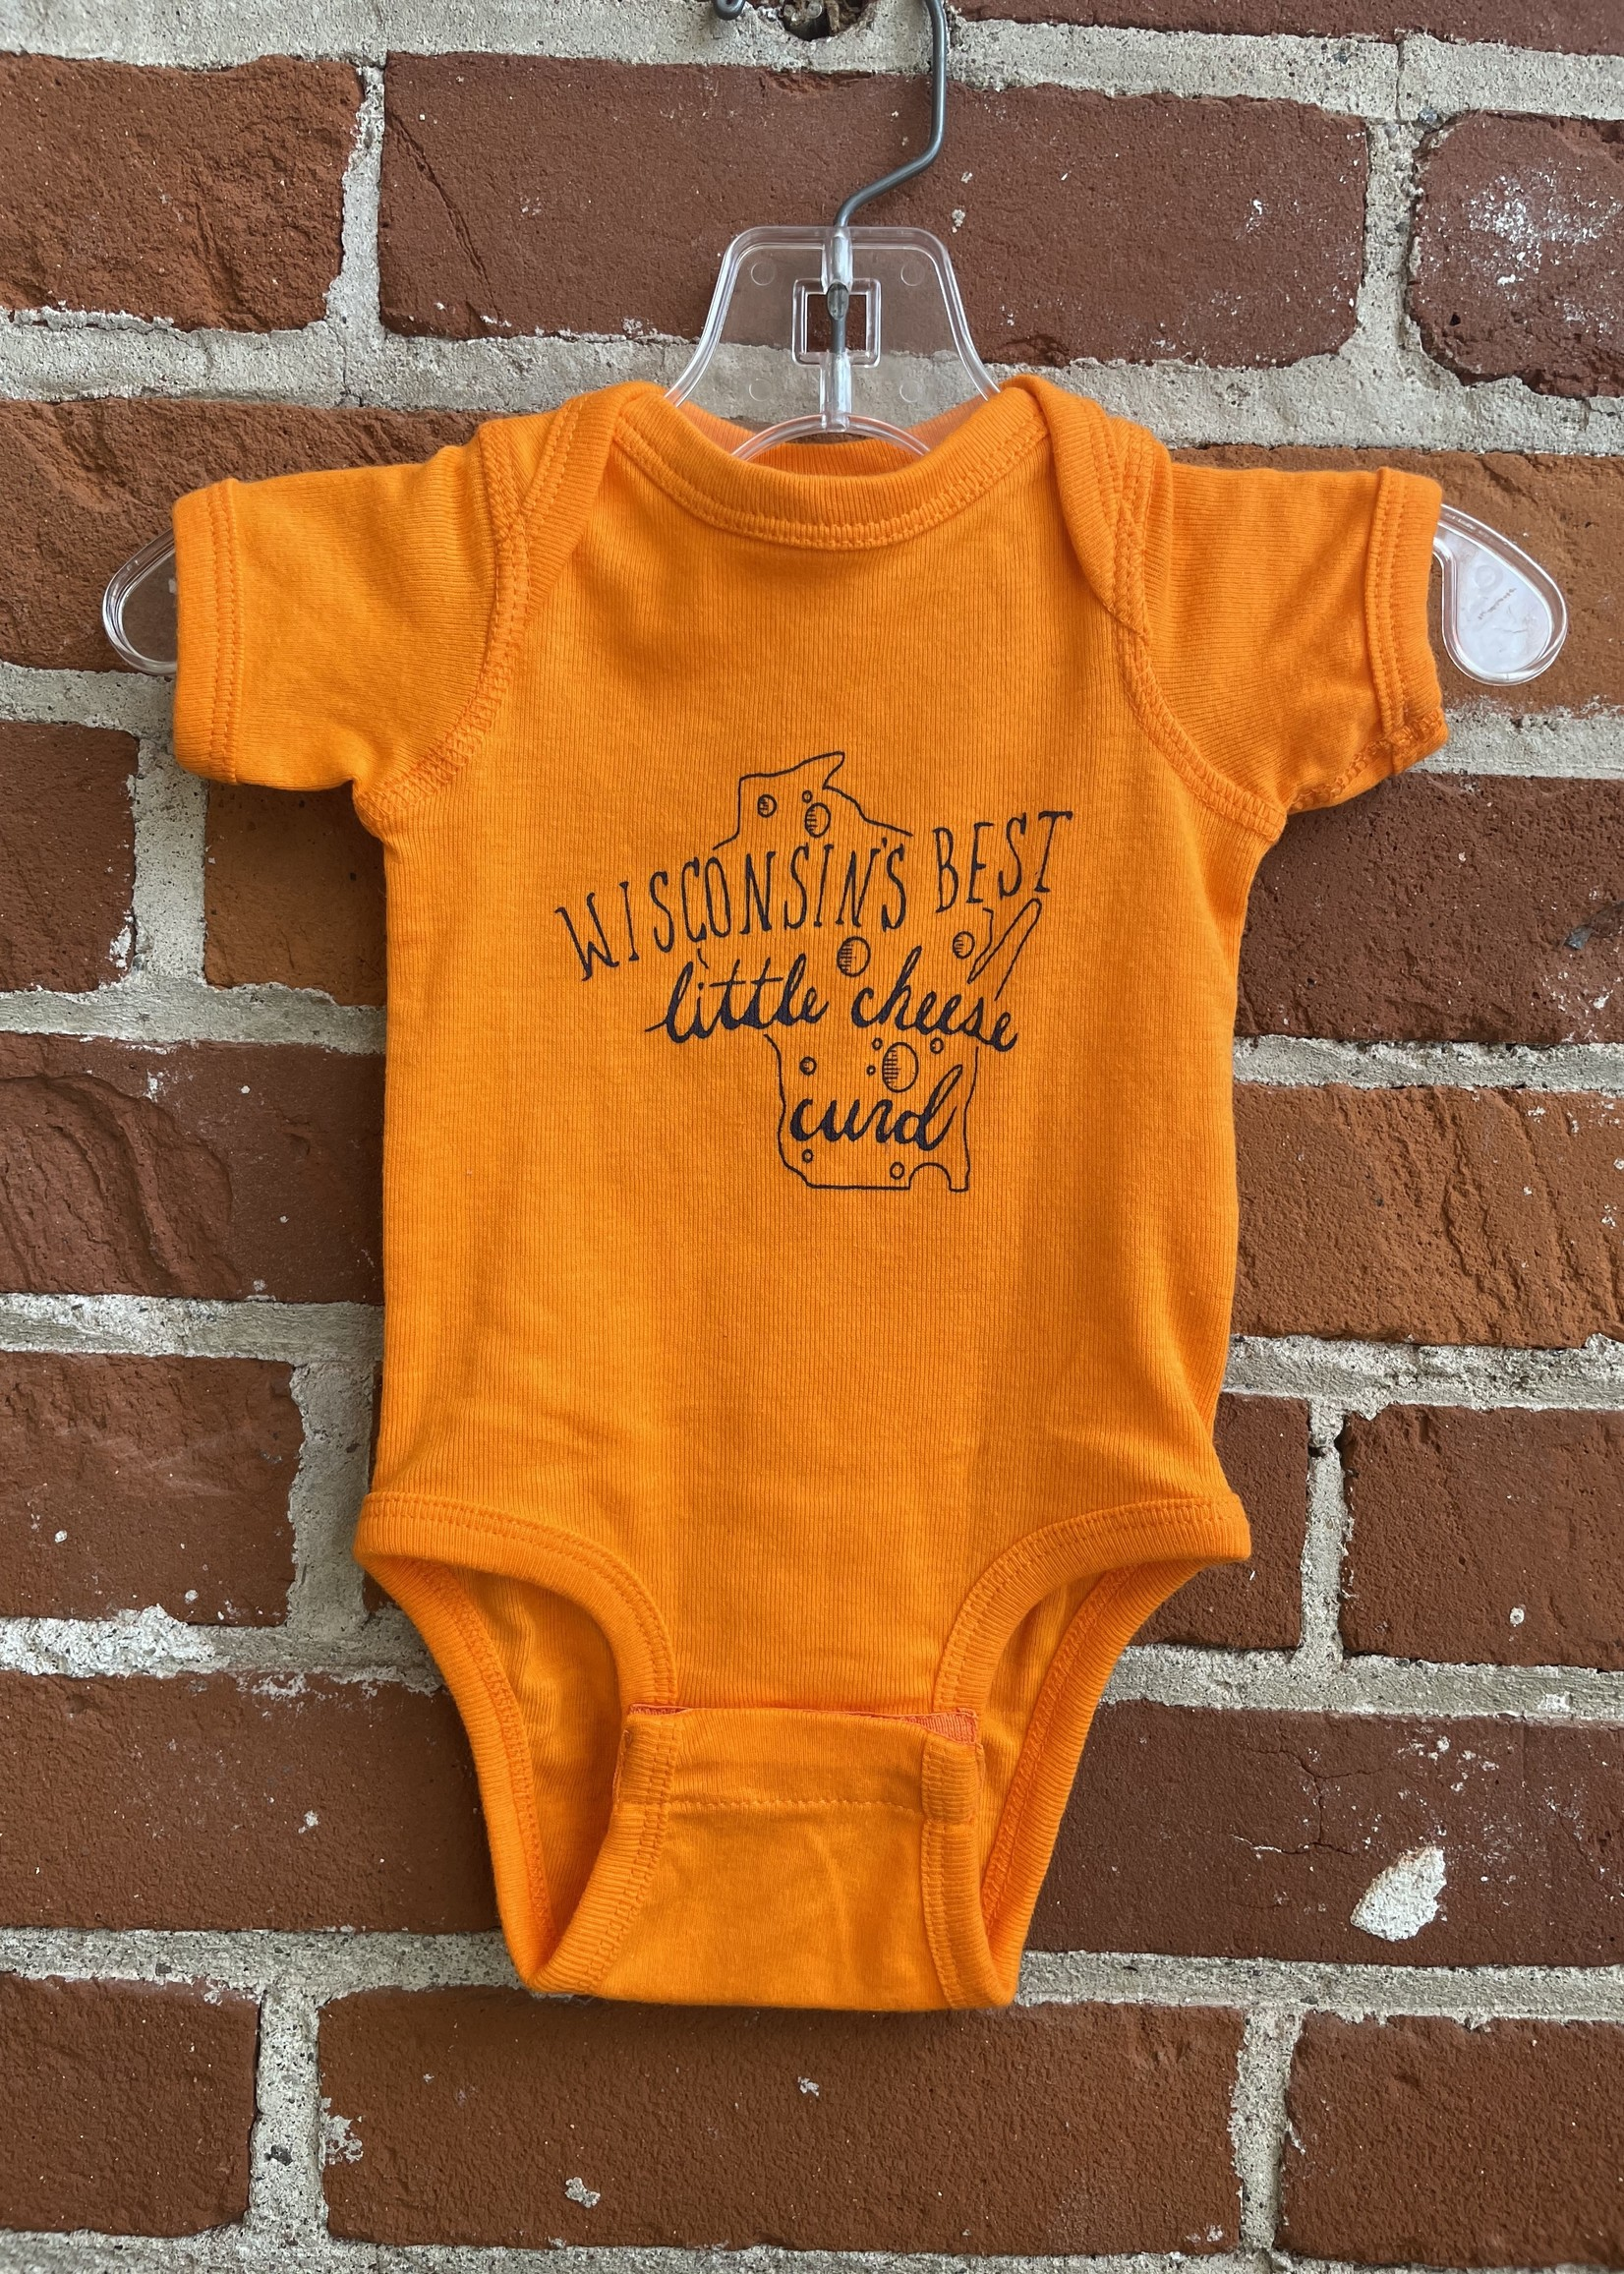 Wisconsin's Best Little Cheesecurd Baby Body Suit